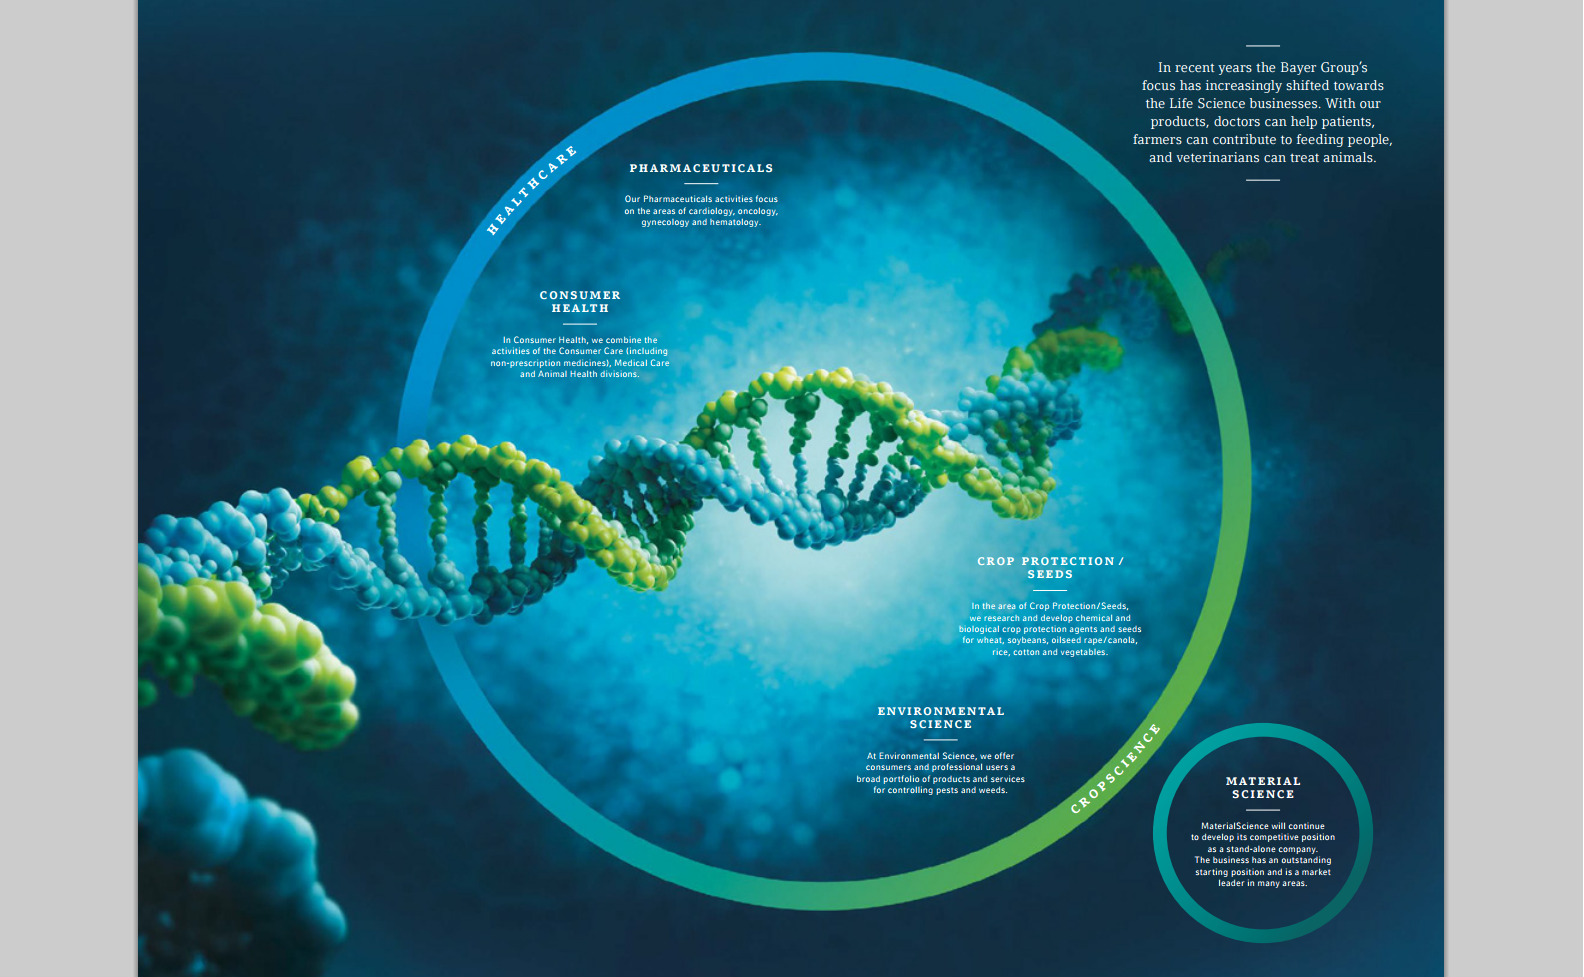 Bayer Annual Report 2014